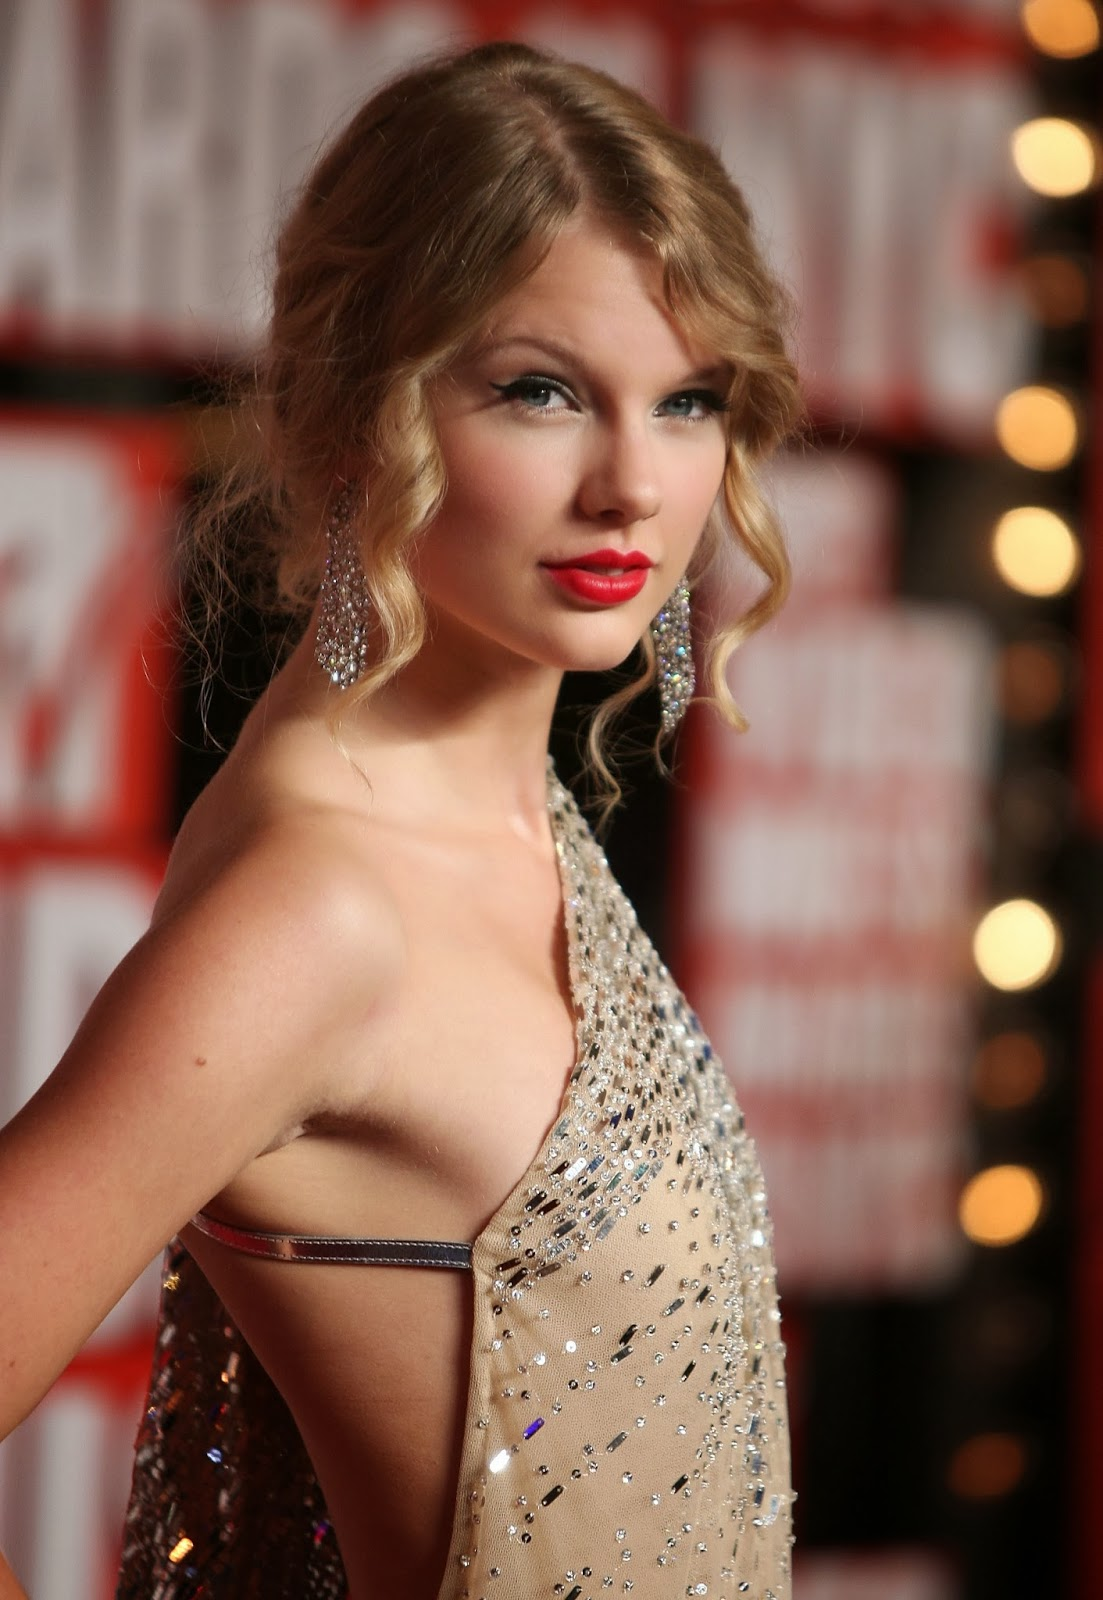 The Best Looking Girls Ever: Taylor Swift